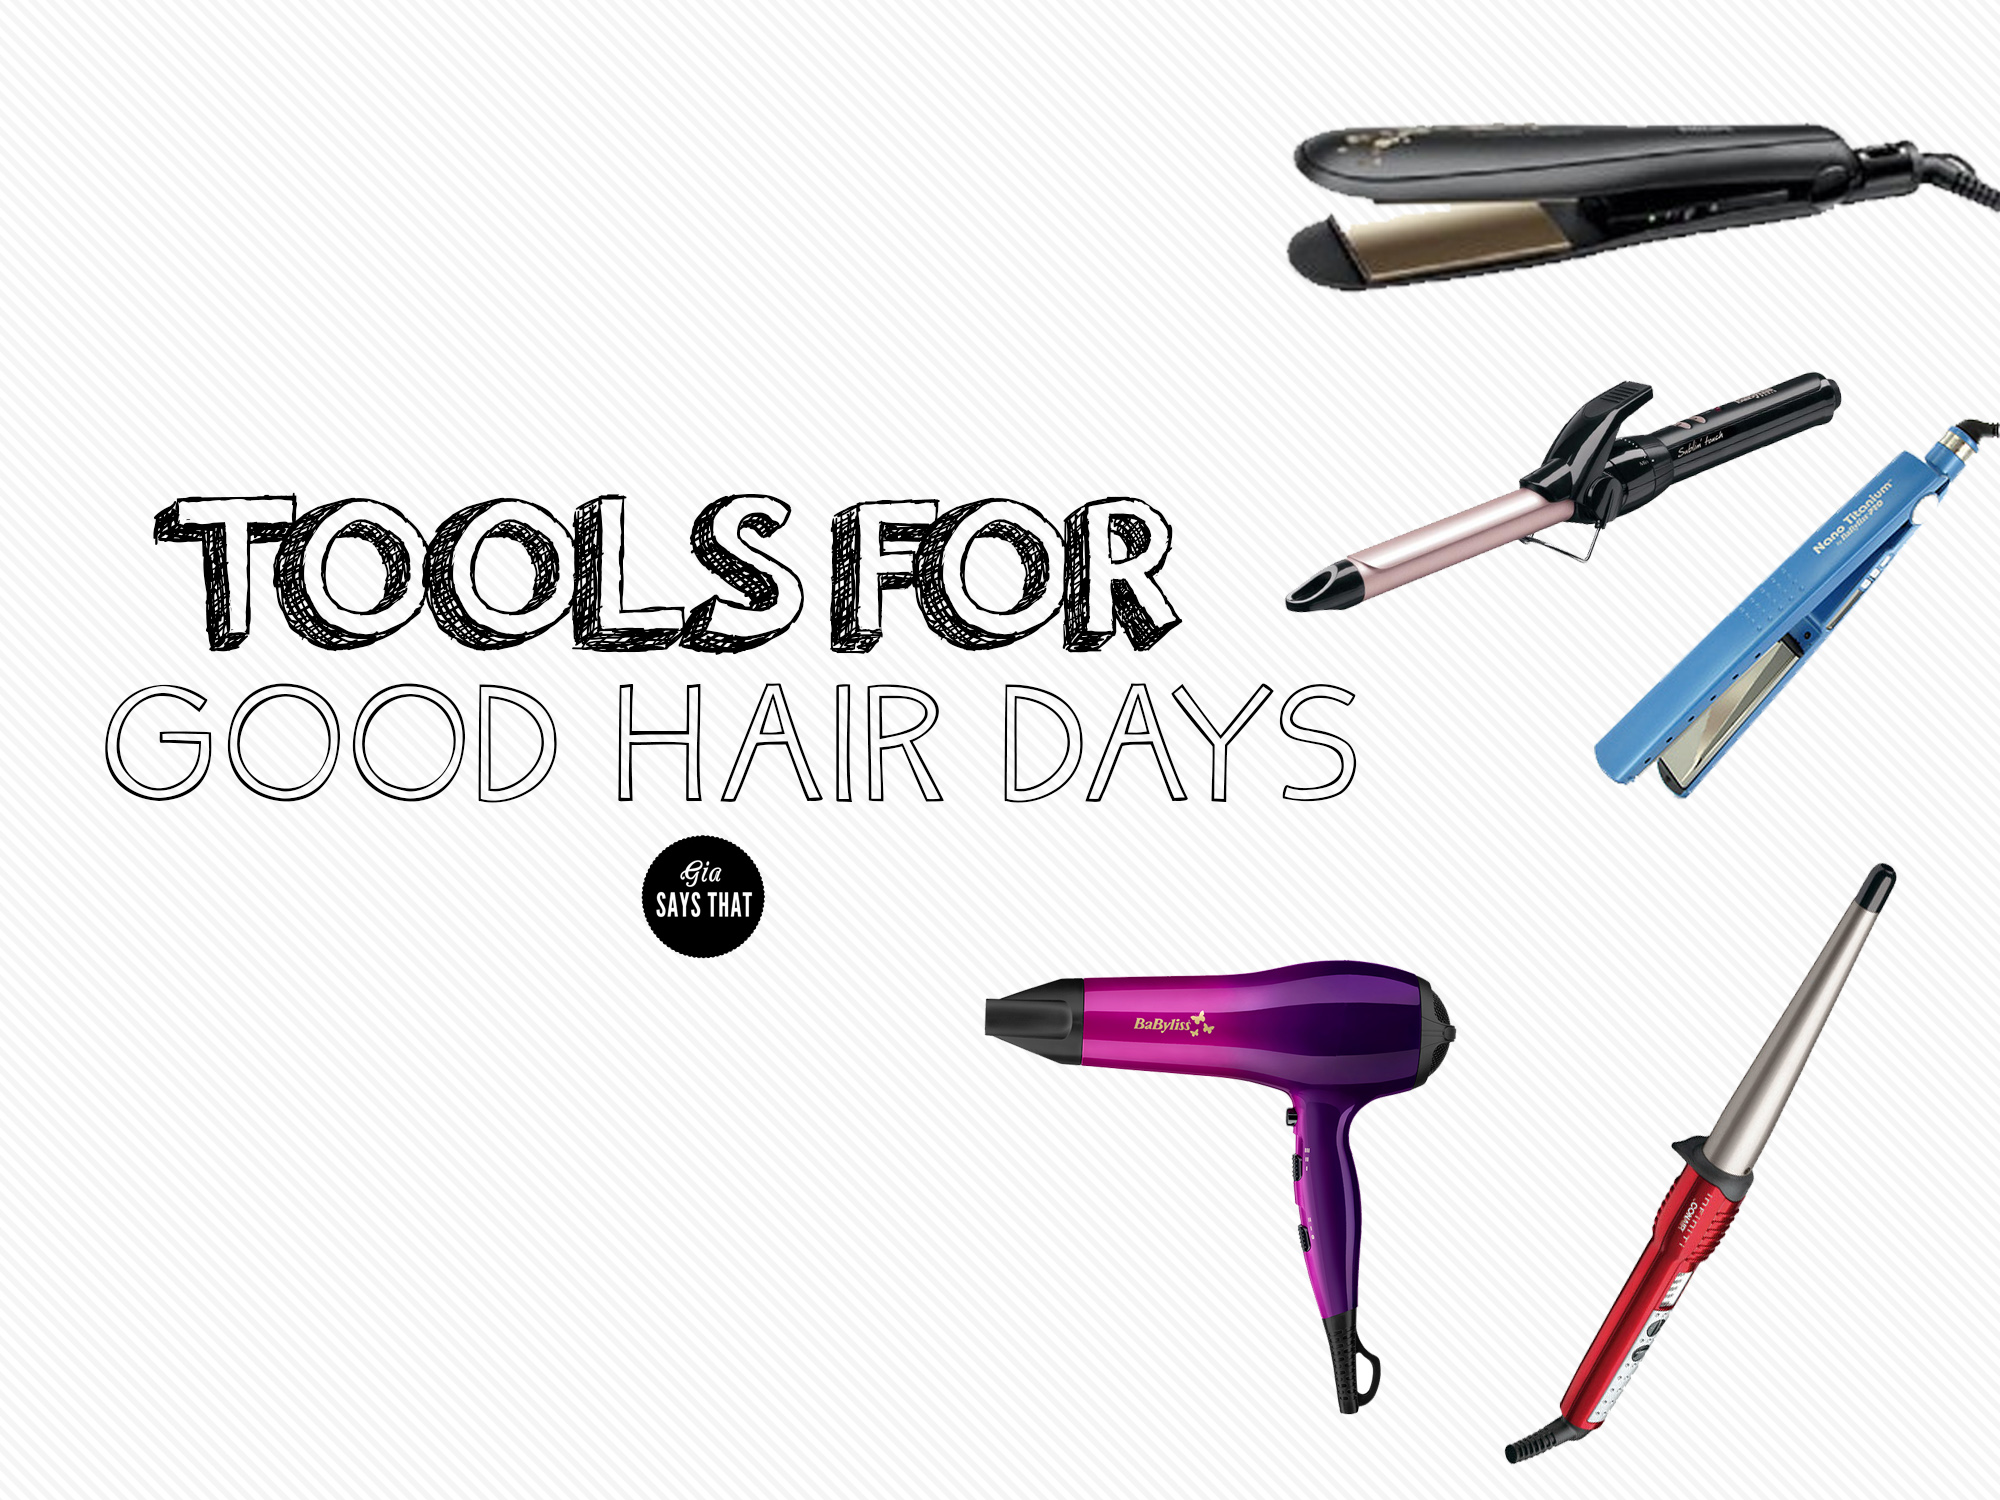 TOOLS-FOR-GOOD-HAIRDAYS